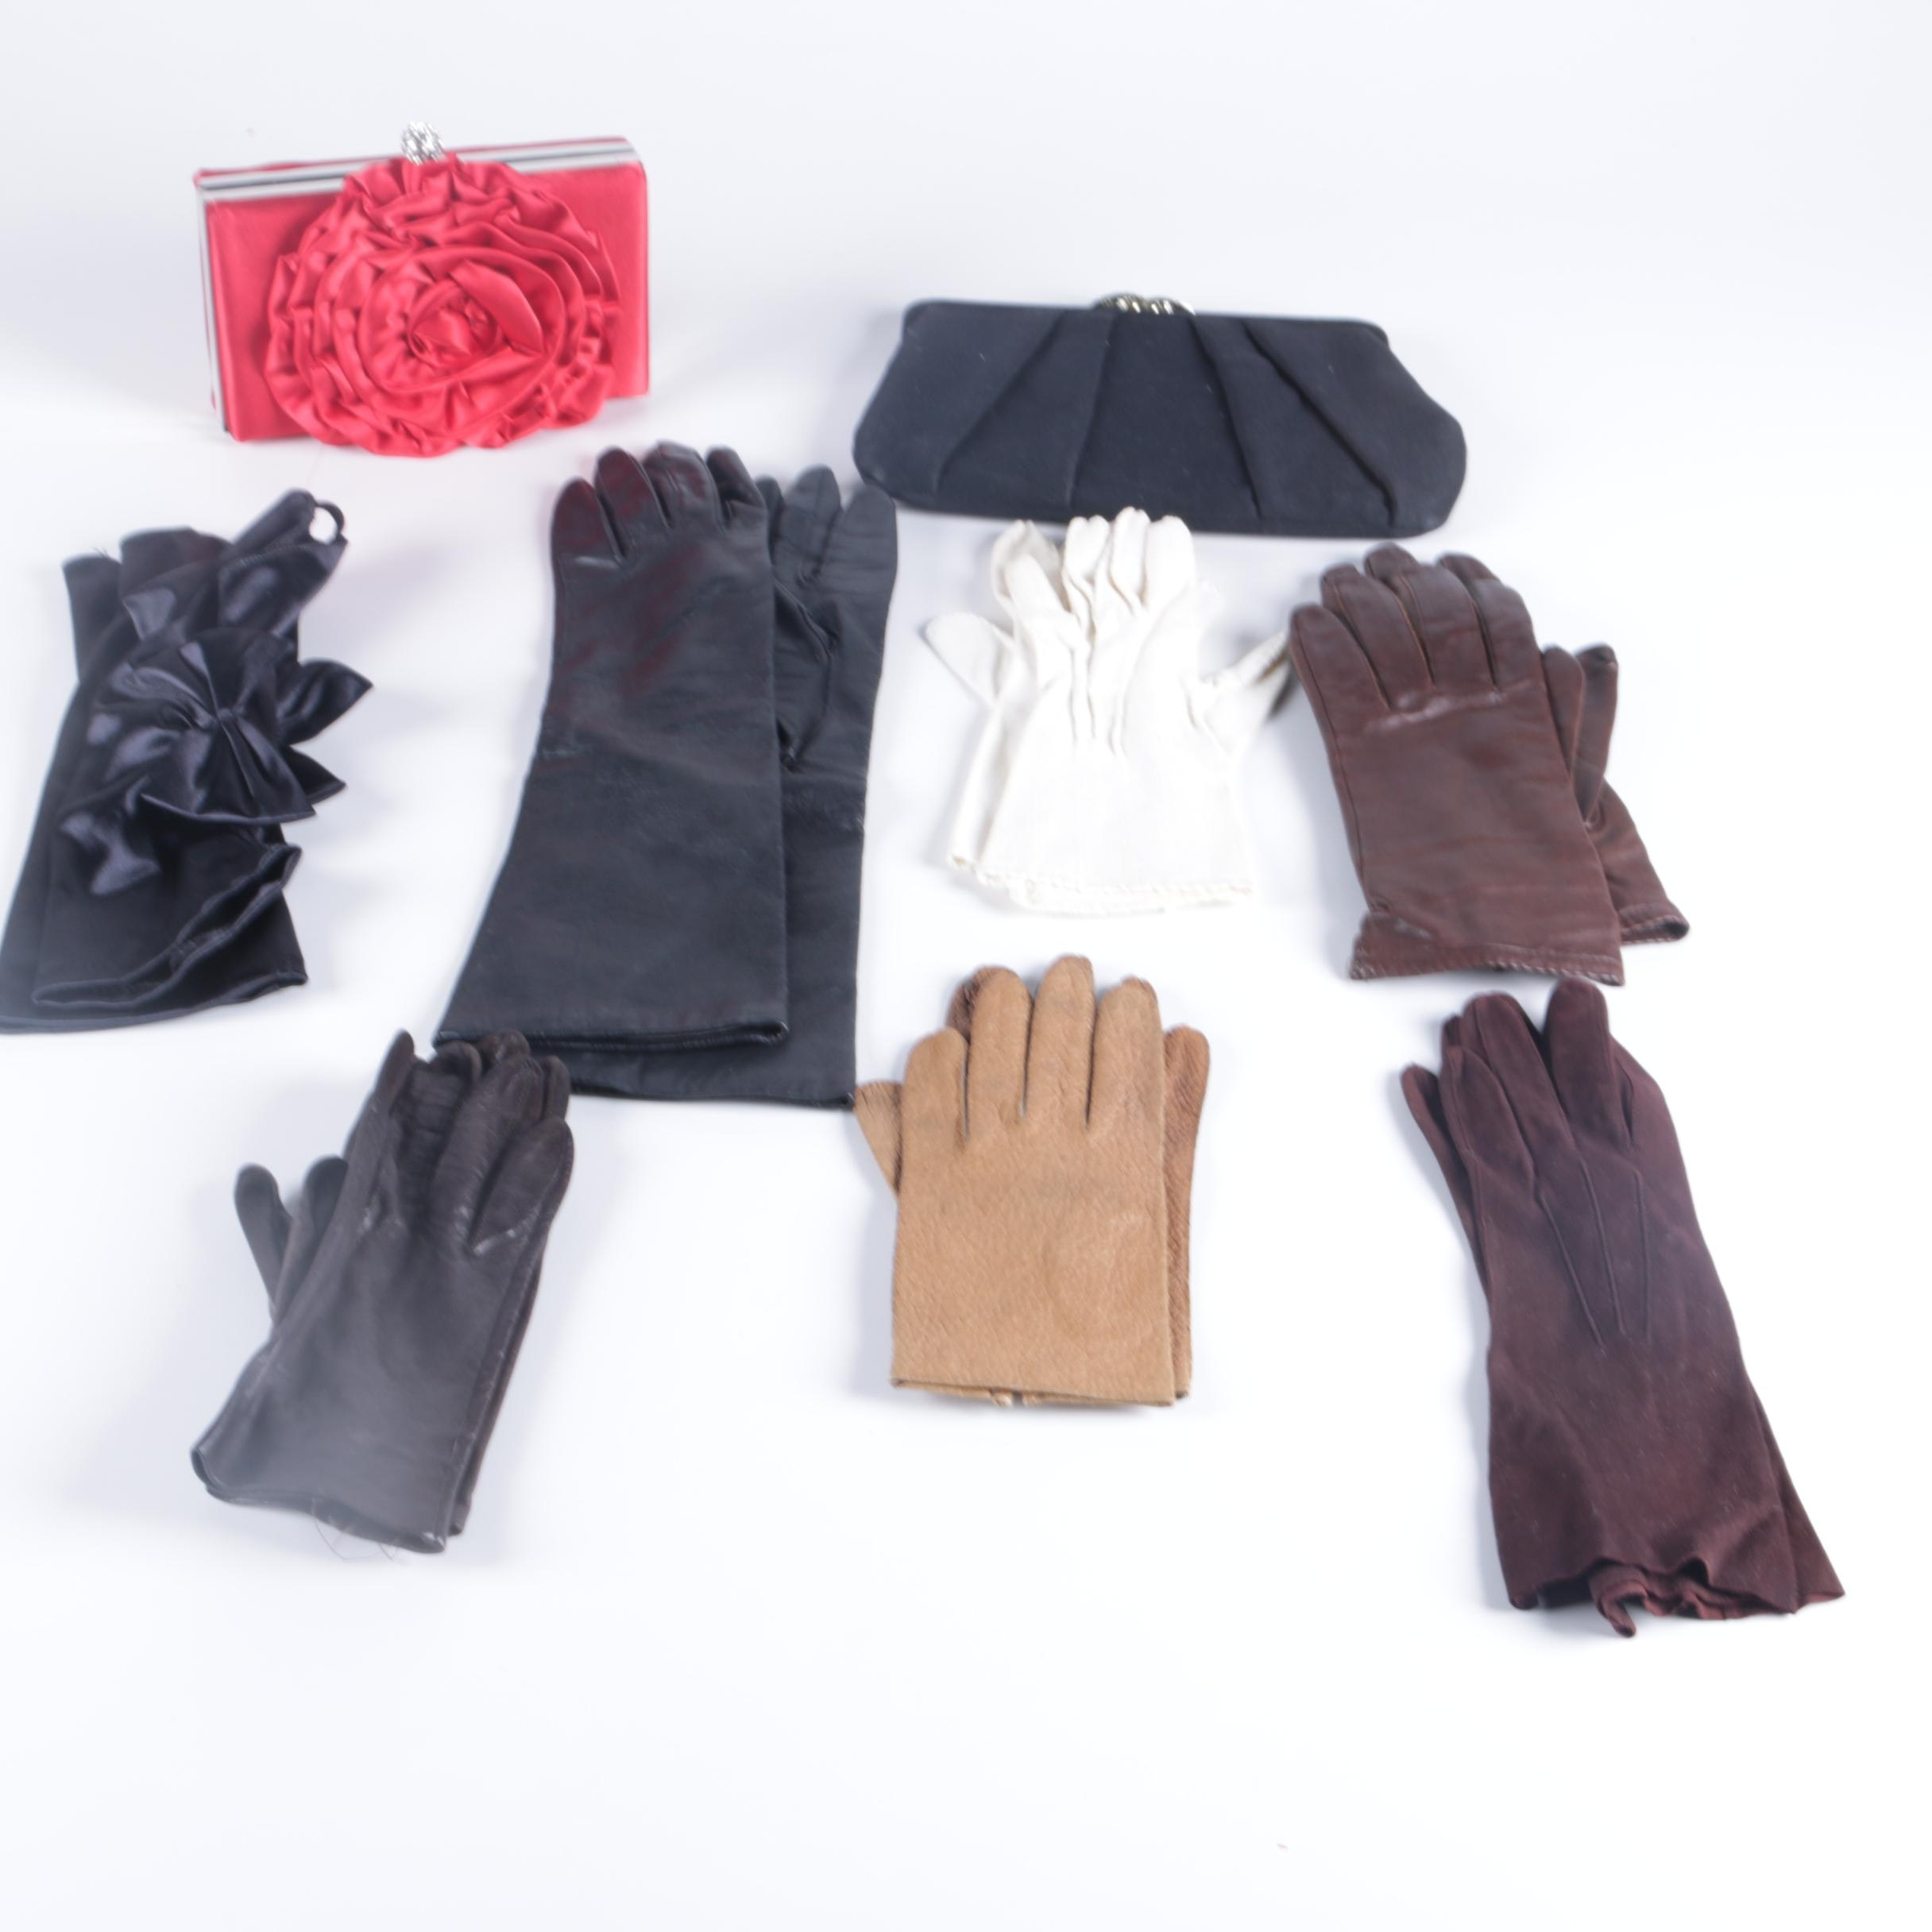 Women's Gloves and Clutches